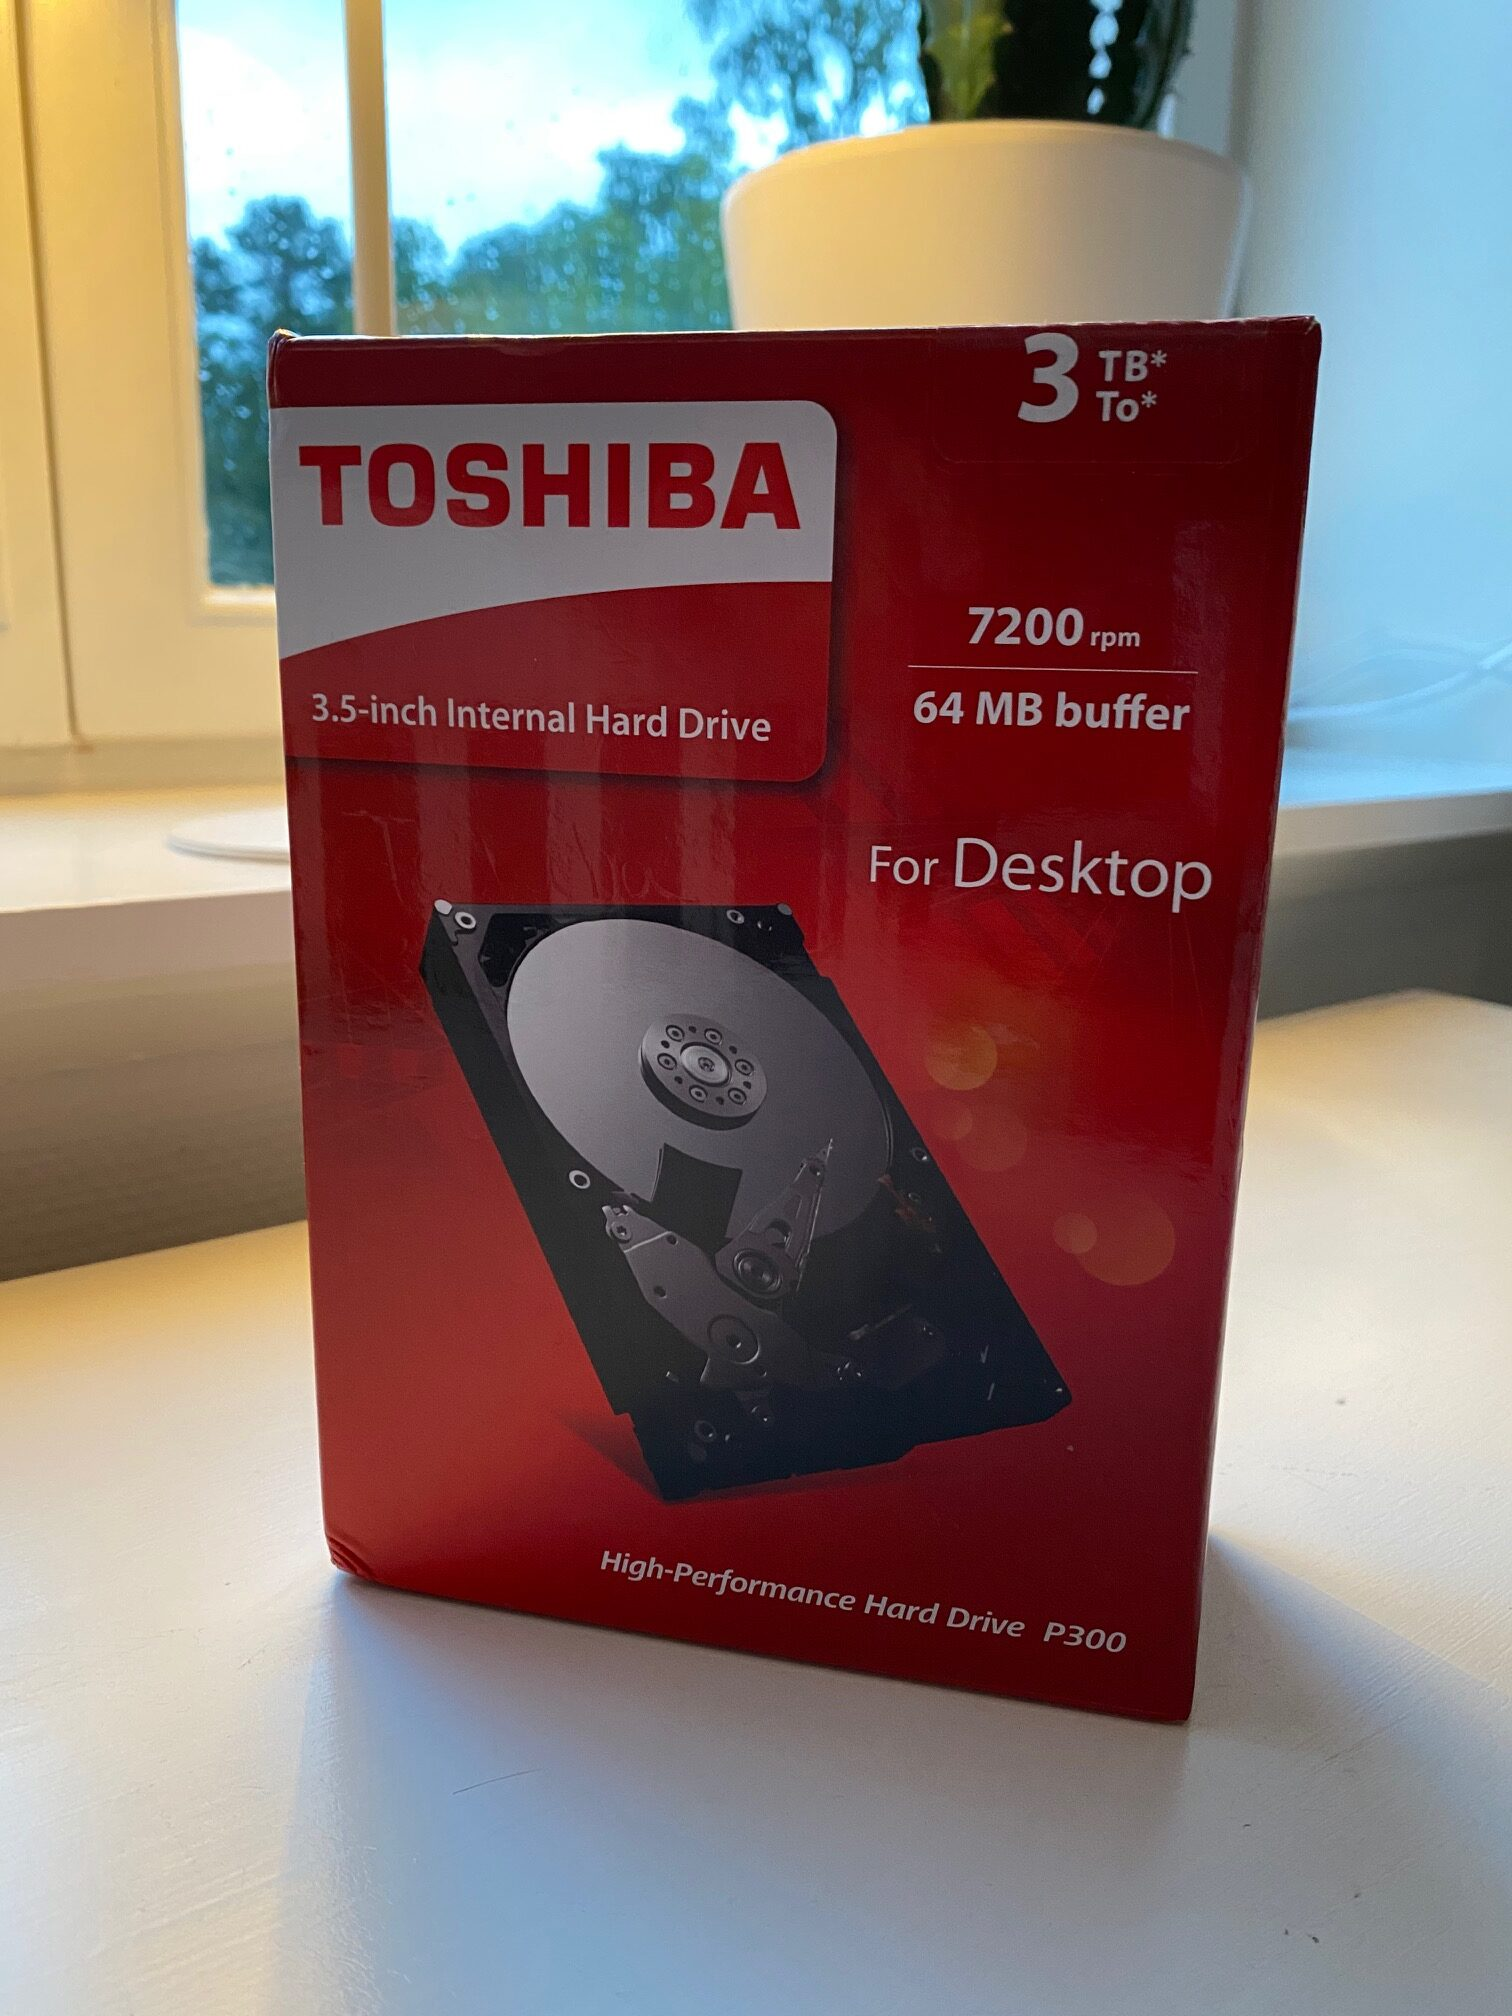 Toshiba P300 (3TB) Quick Look: Faster, harder stronger?